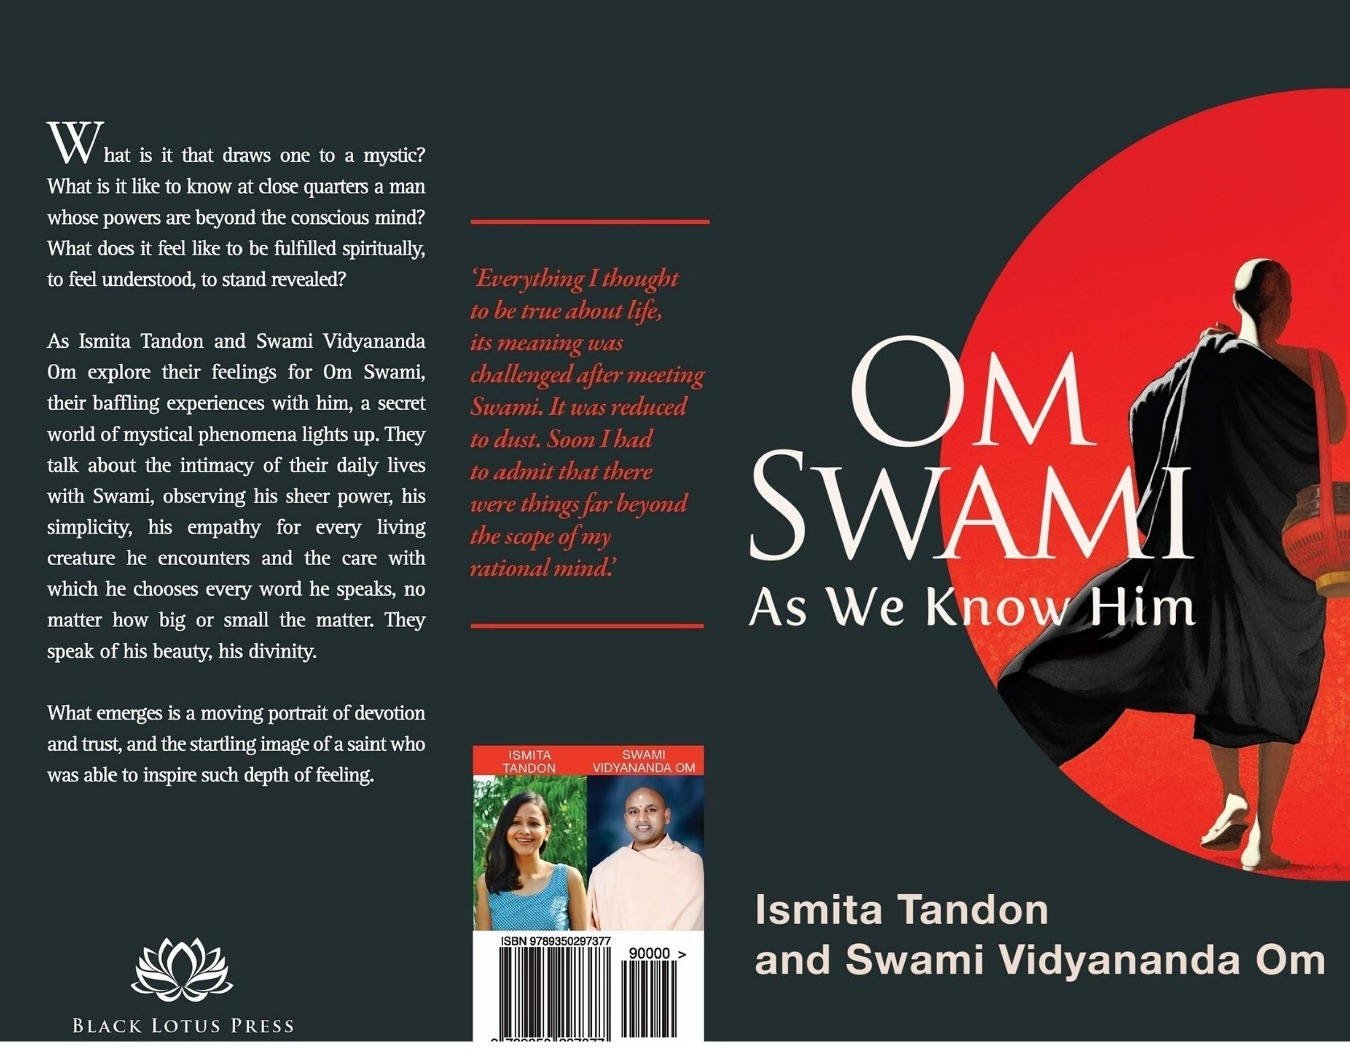 OM SWAMI: As We Know Him – BOOK REVIEW